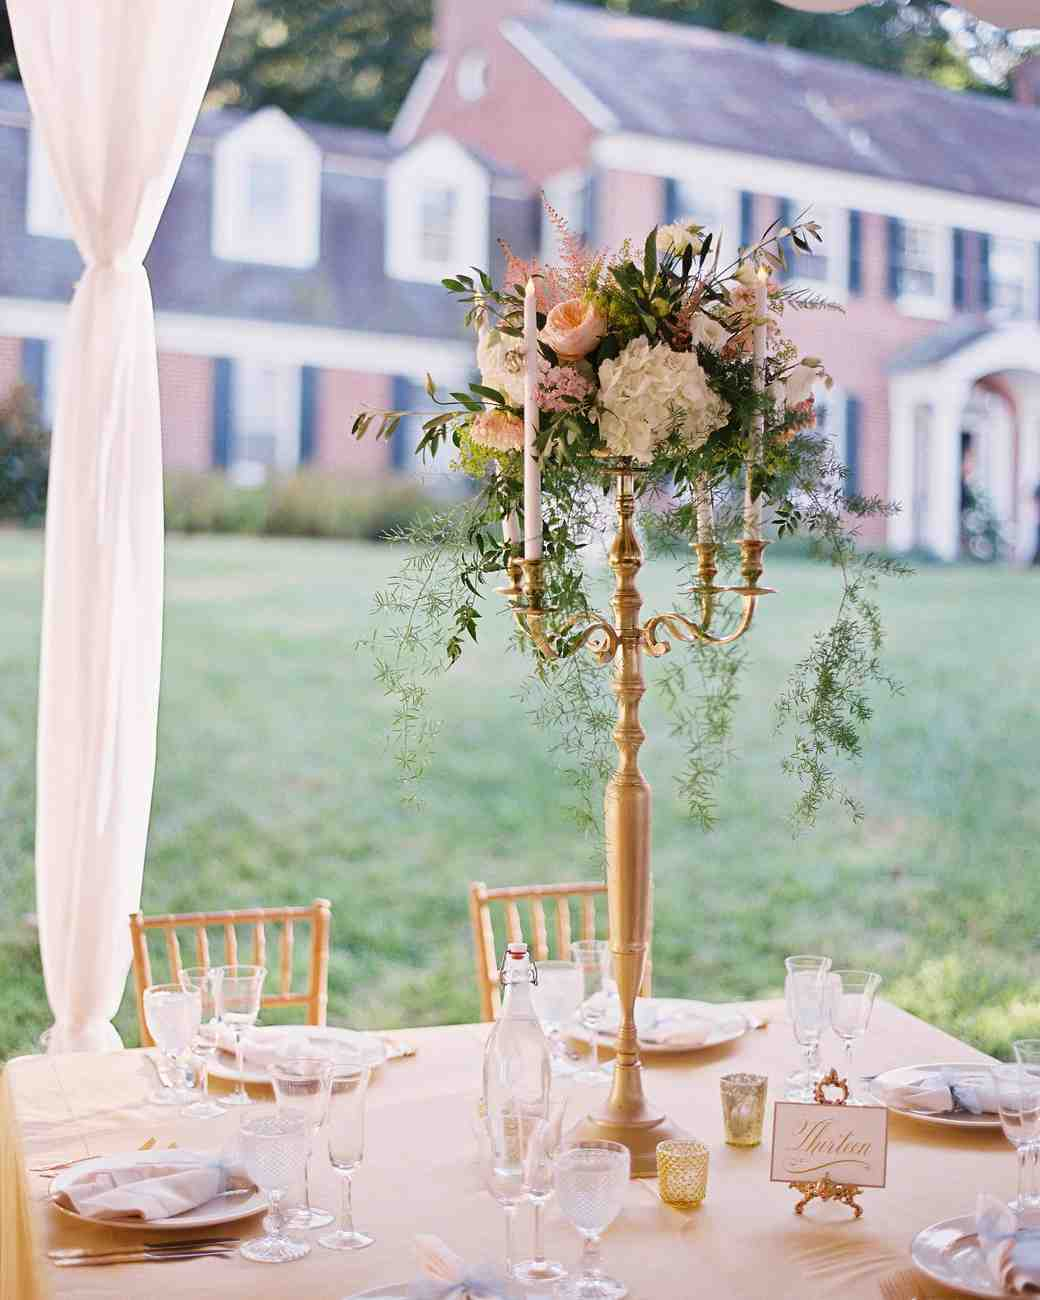 Flowers For Wedding Table Centerpieces: Tall Centerpieces That Will Take Your Reception Tables To